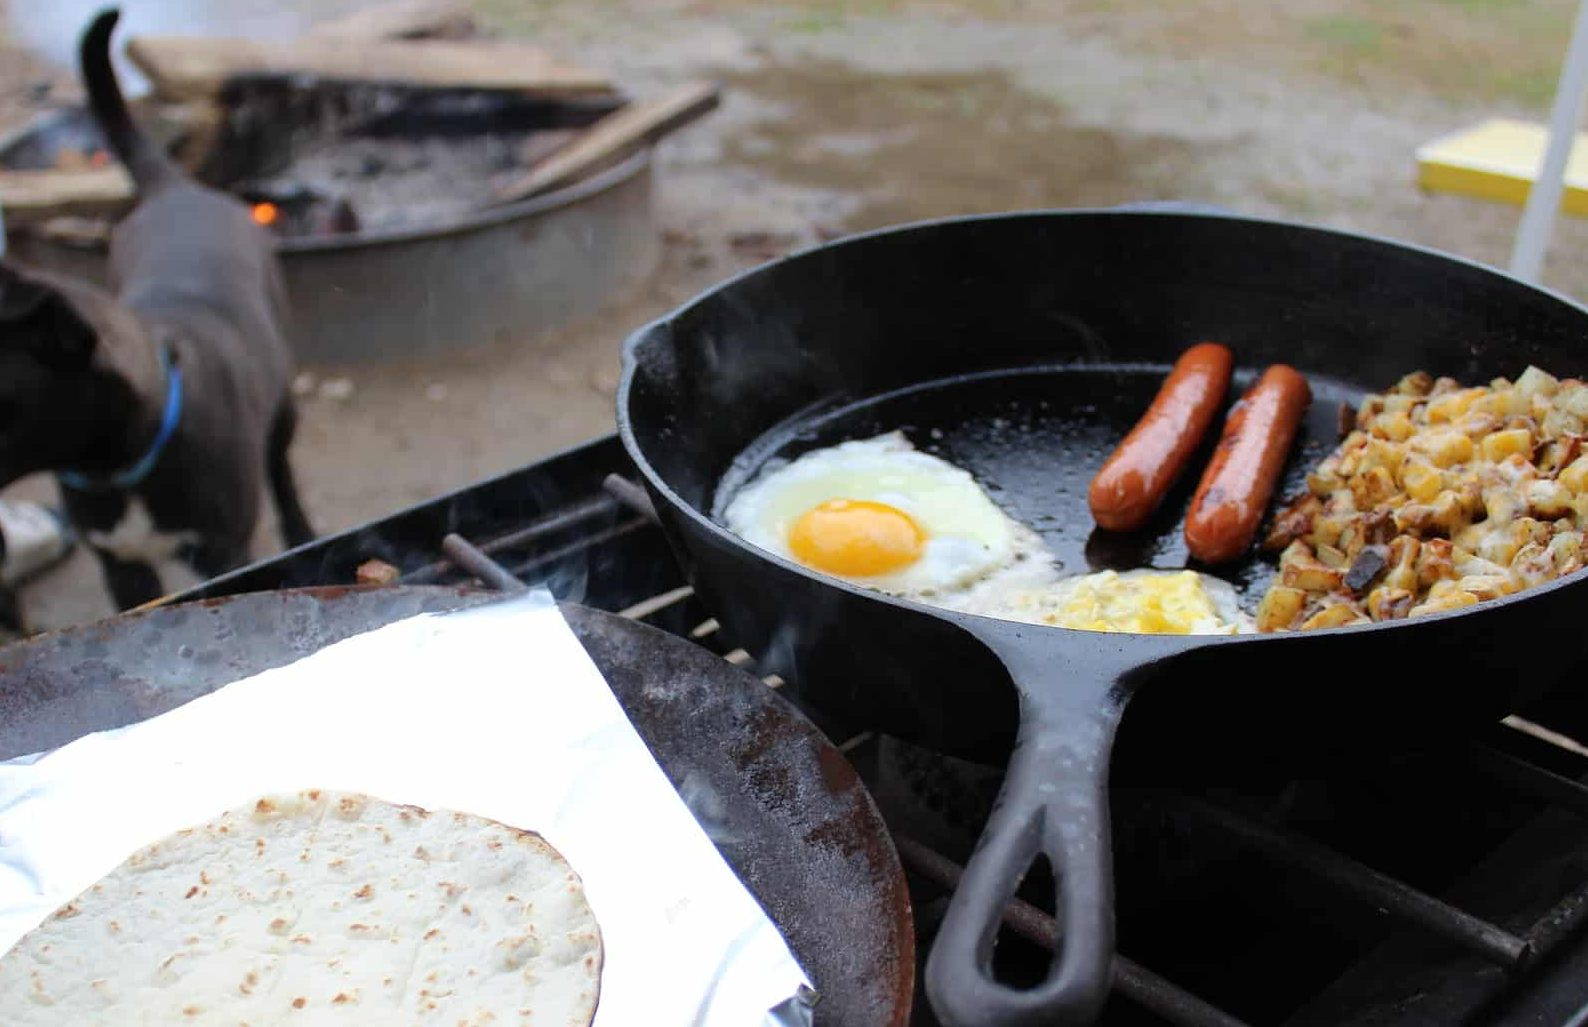 How to clean a cast iron skillet while camping